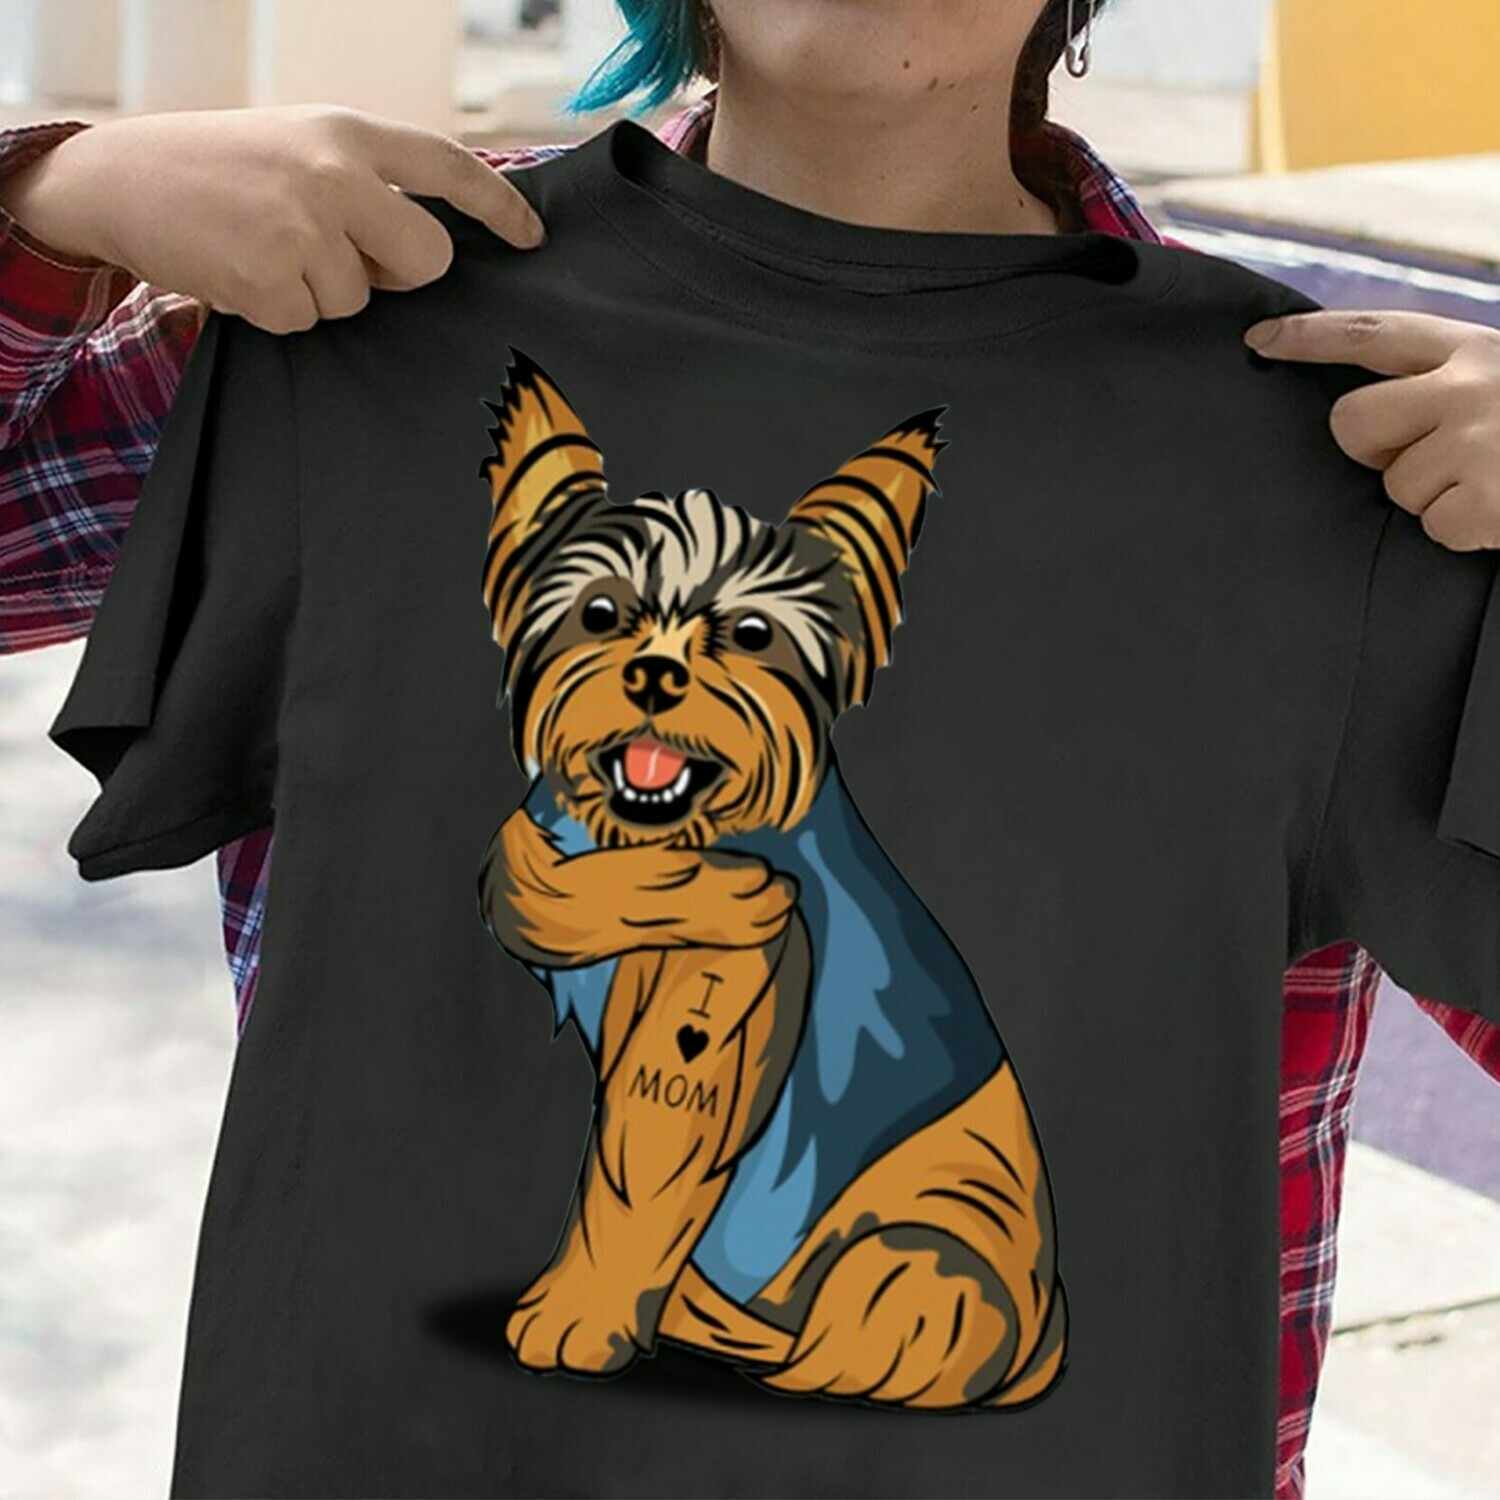 The Yorkshire terrier Breed Dog Black Tattoos I Love Mom sitting Thick Thighs  T-Shirt Hoodie Sweatshirt Sweater Tee Kids Youth Gifts Jolly Family Gifts